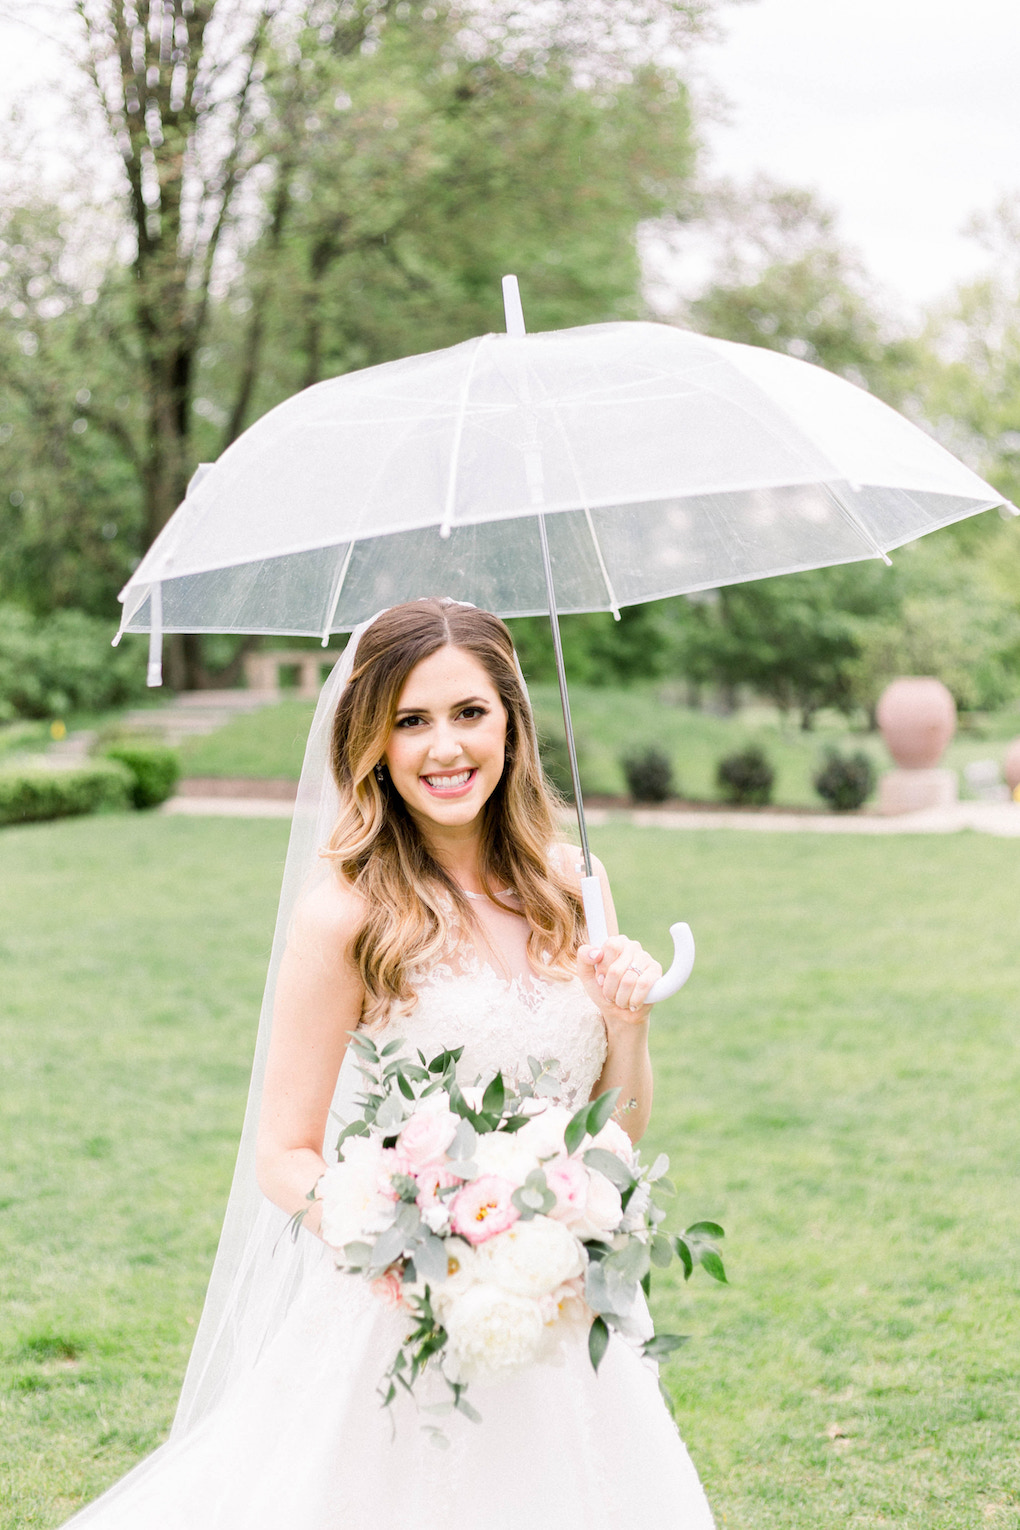 Bridal portrait with umbrella: Romantic Fairytale wedding at the Omni William Penn in Pittsburgh, PA planned by Exhale Events. Find more wedding inspiration at exhale-events.com!